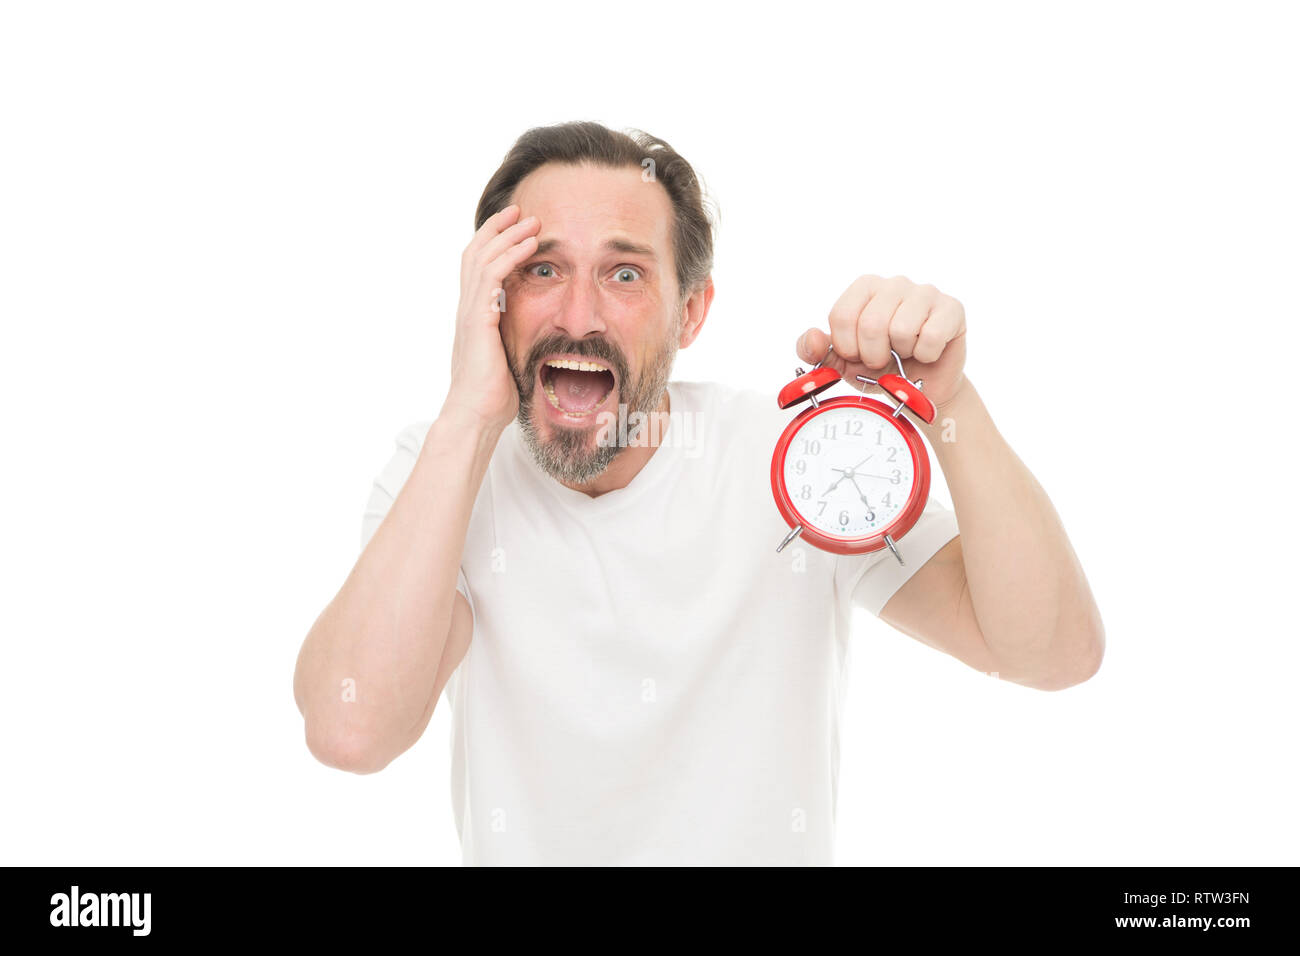 Monday again. Man hold alarm clock in hand. Guy bearded mature man worry about time left till work. Time management and discipline. Punctuality and responsibility. Man with clock on white background. - Stock Image